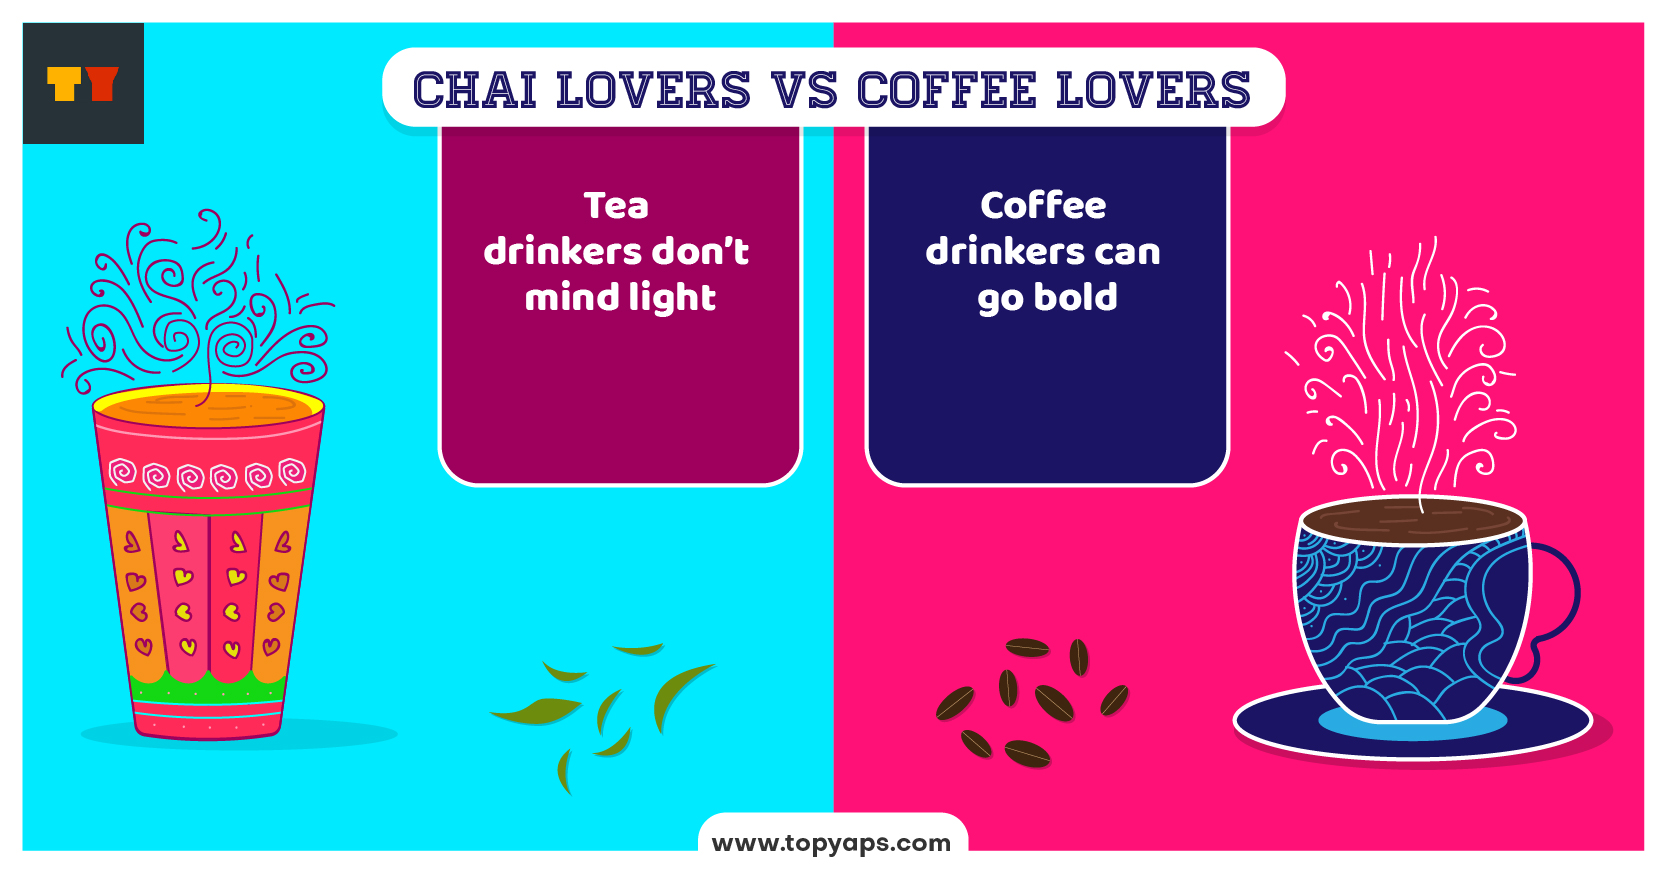 Tea Vs Coffee Lovers Pictures That Will Make Your Laugh Out Loud #coffeeLovers